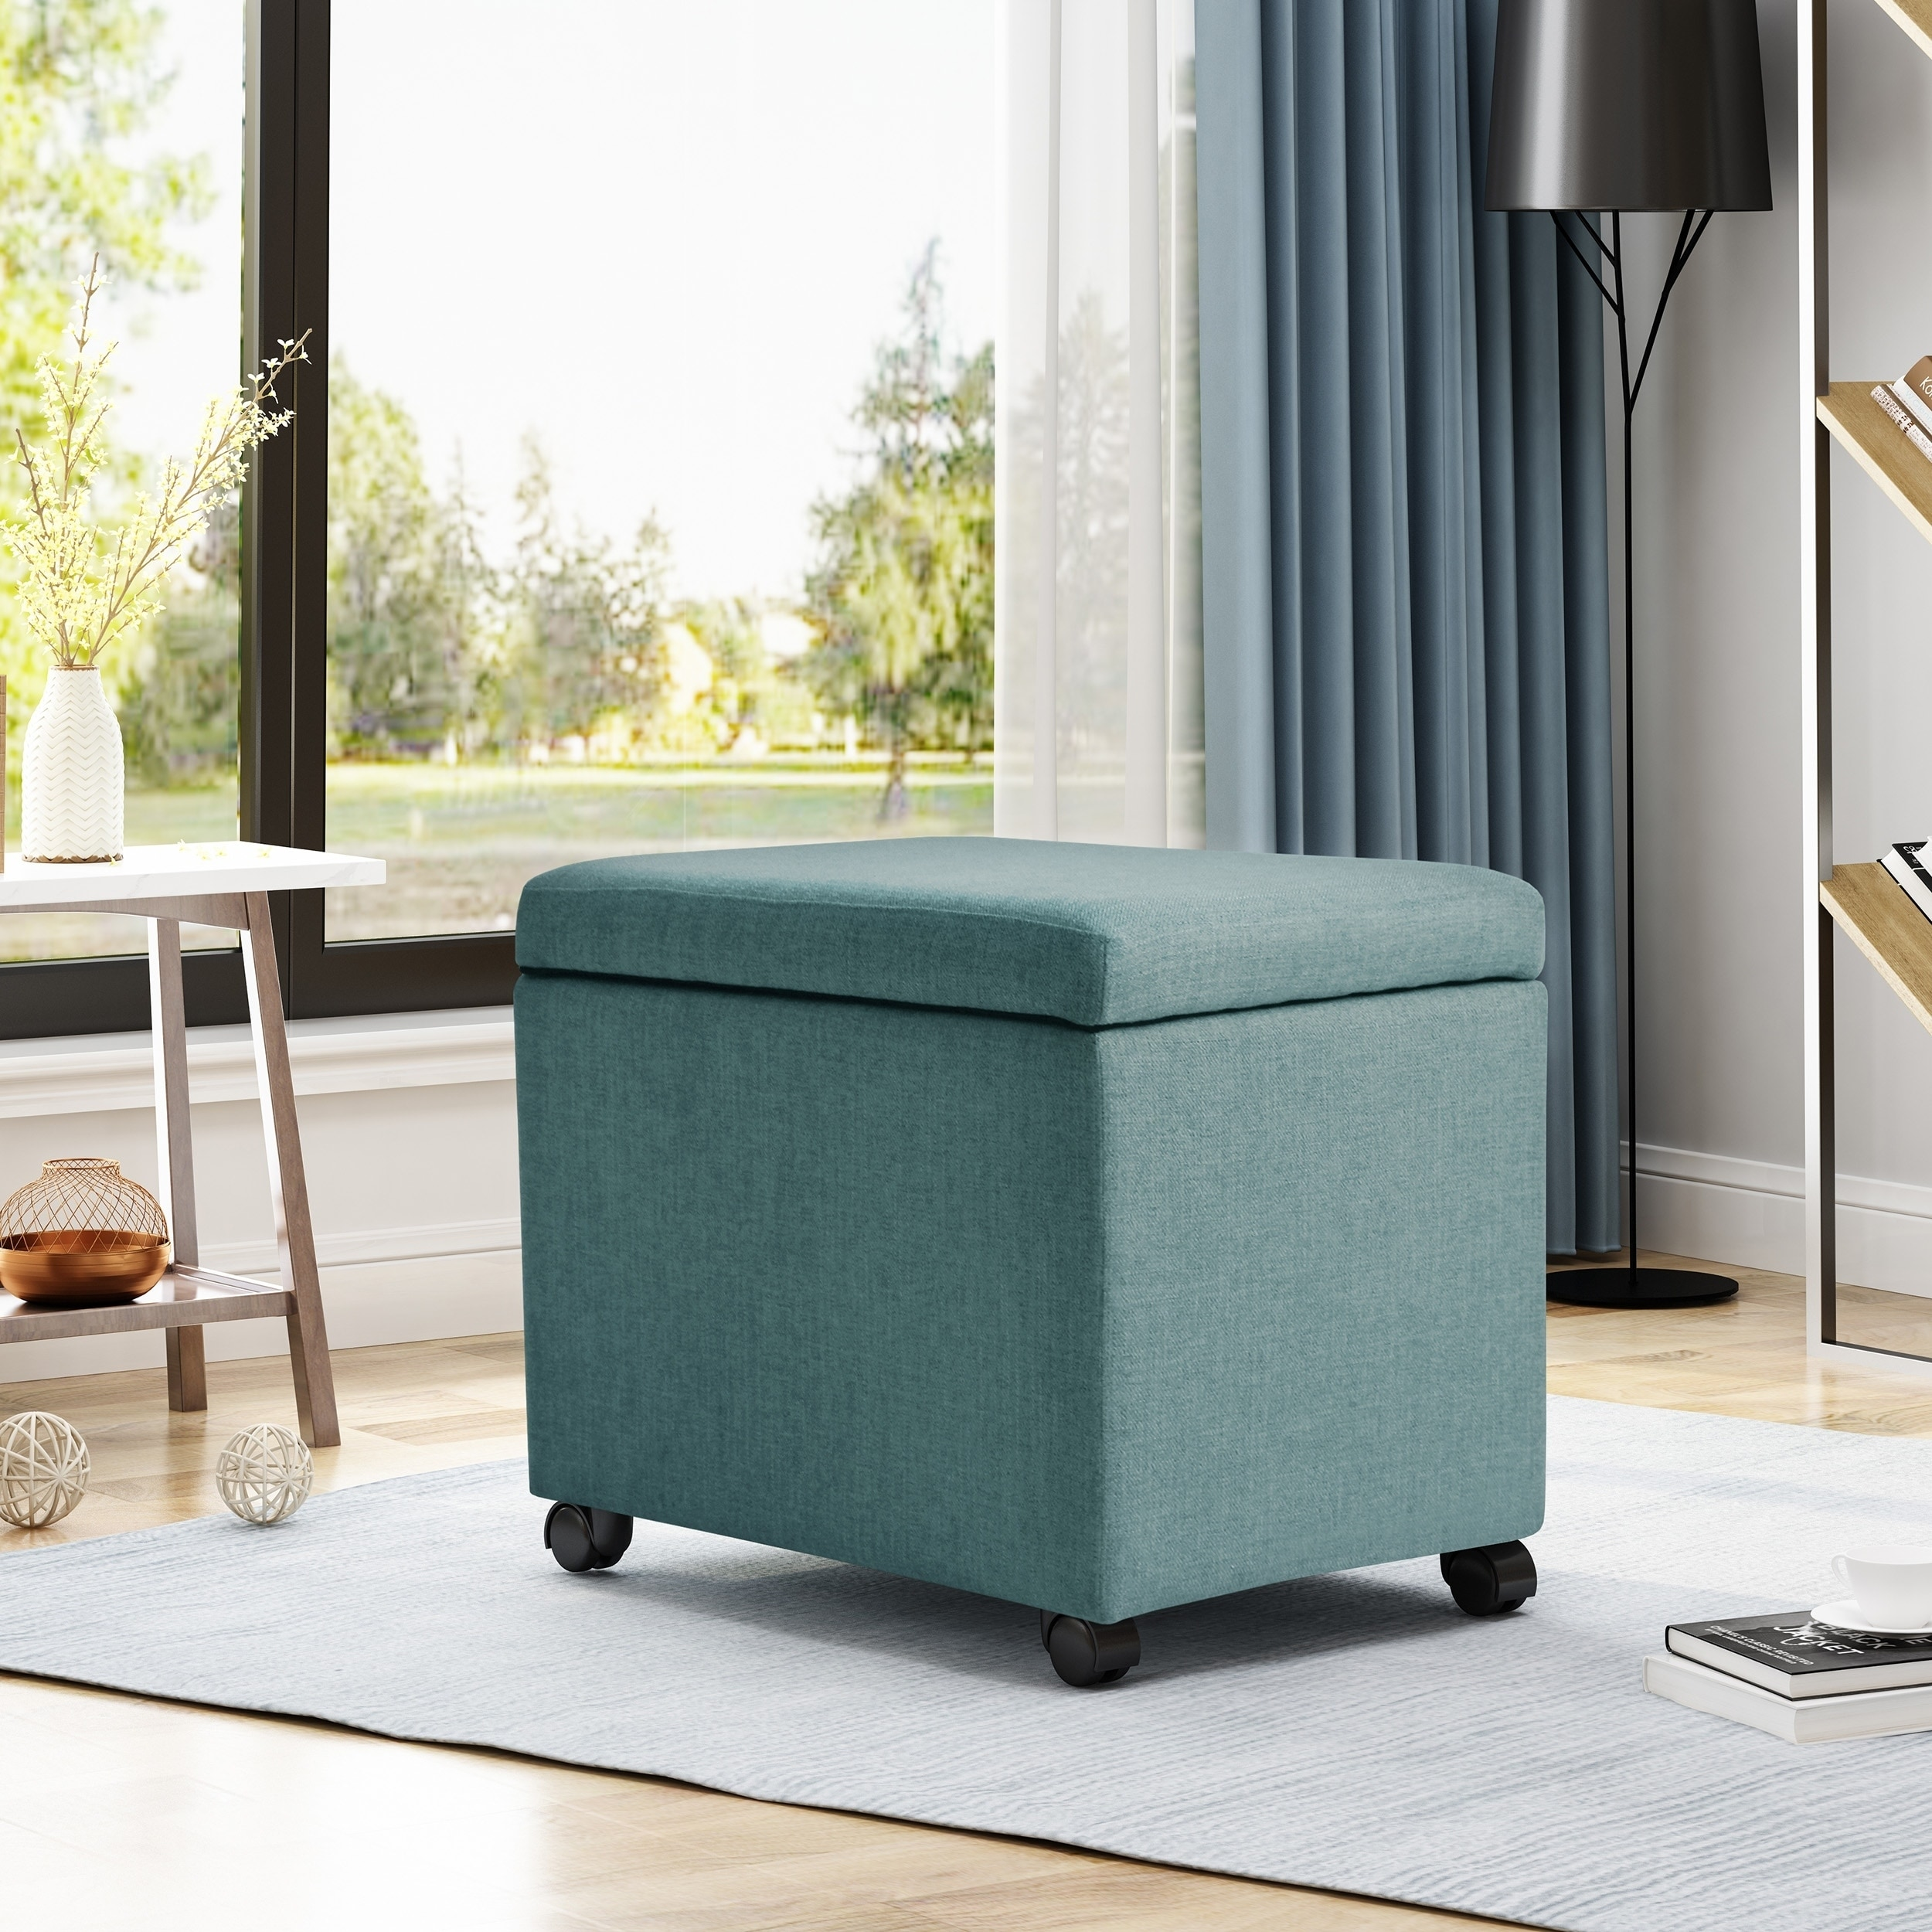 Foster Home Office File Storage Ottoman By Christopher Knight Home Overstock 21903976